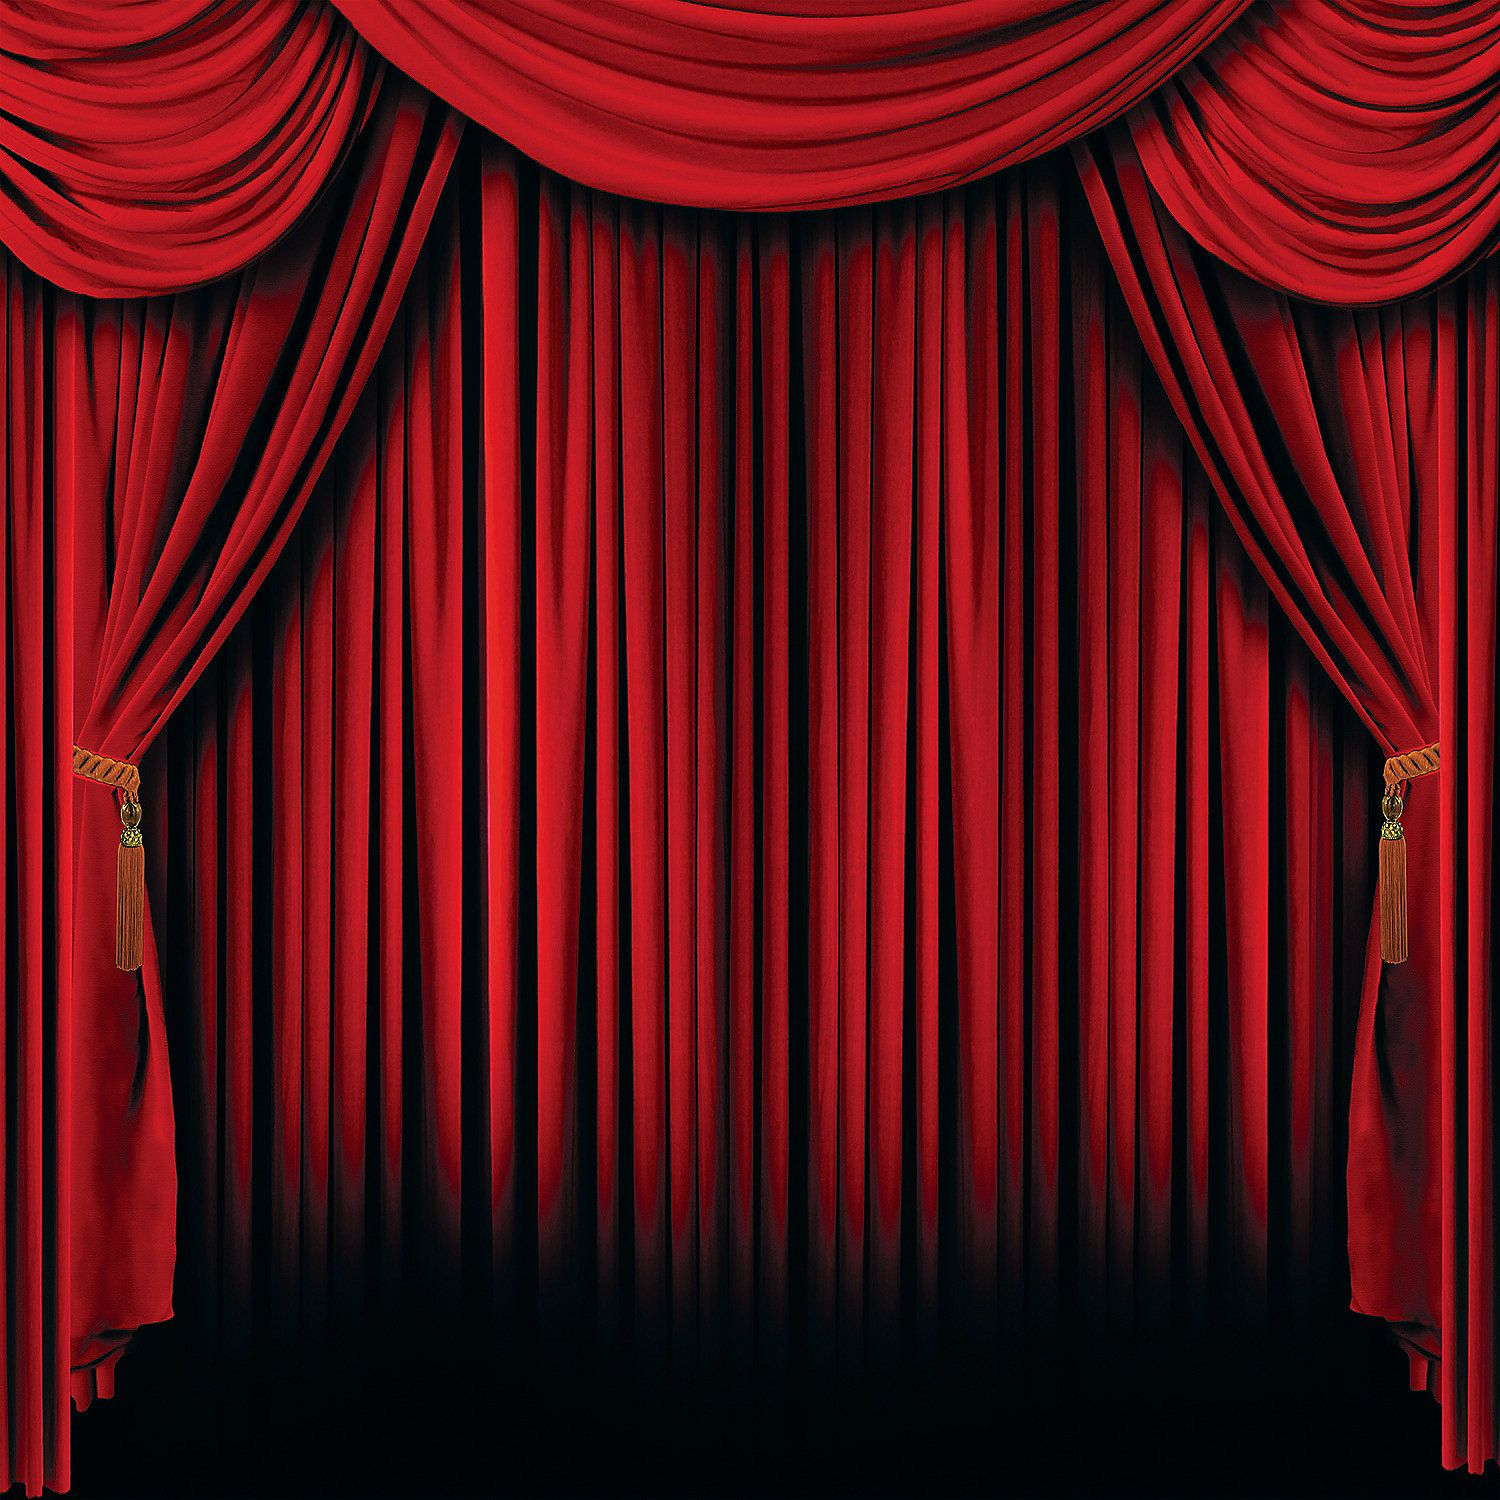 Curtain backdrop pinterest backdrops. Curtains clipart big red clip art download